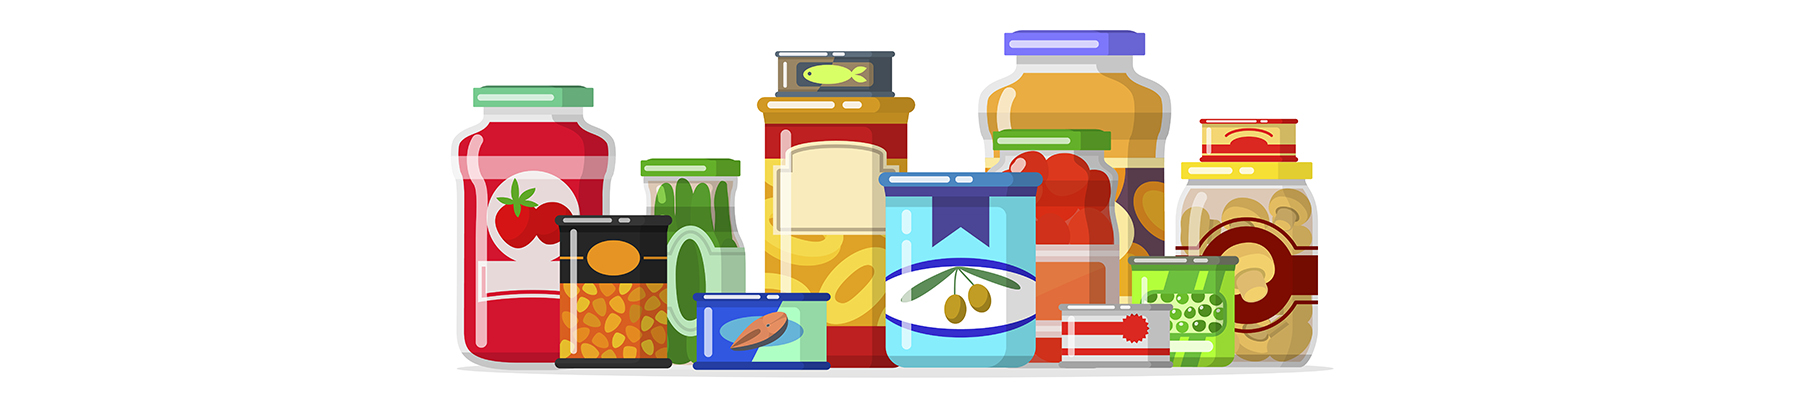 An illustration of several food pantry items